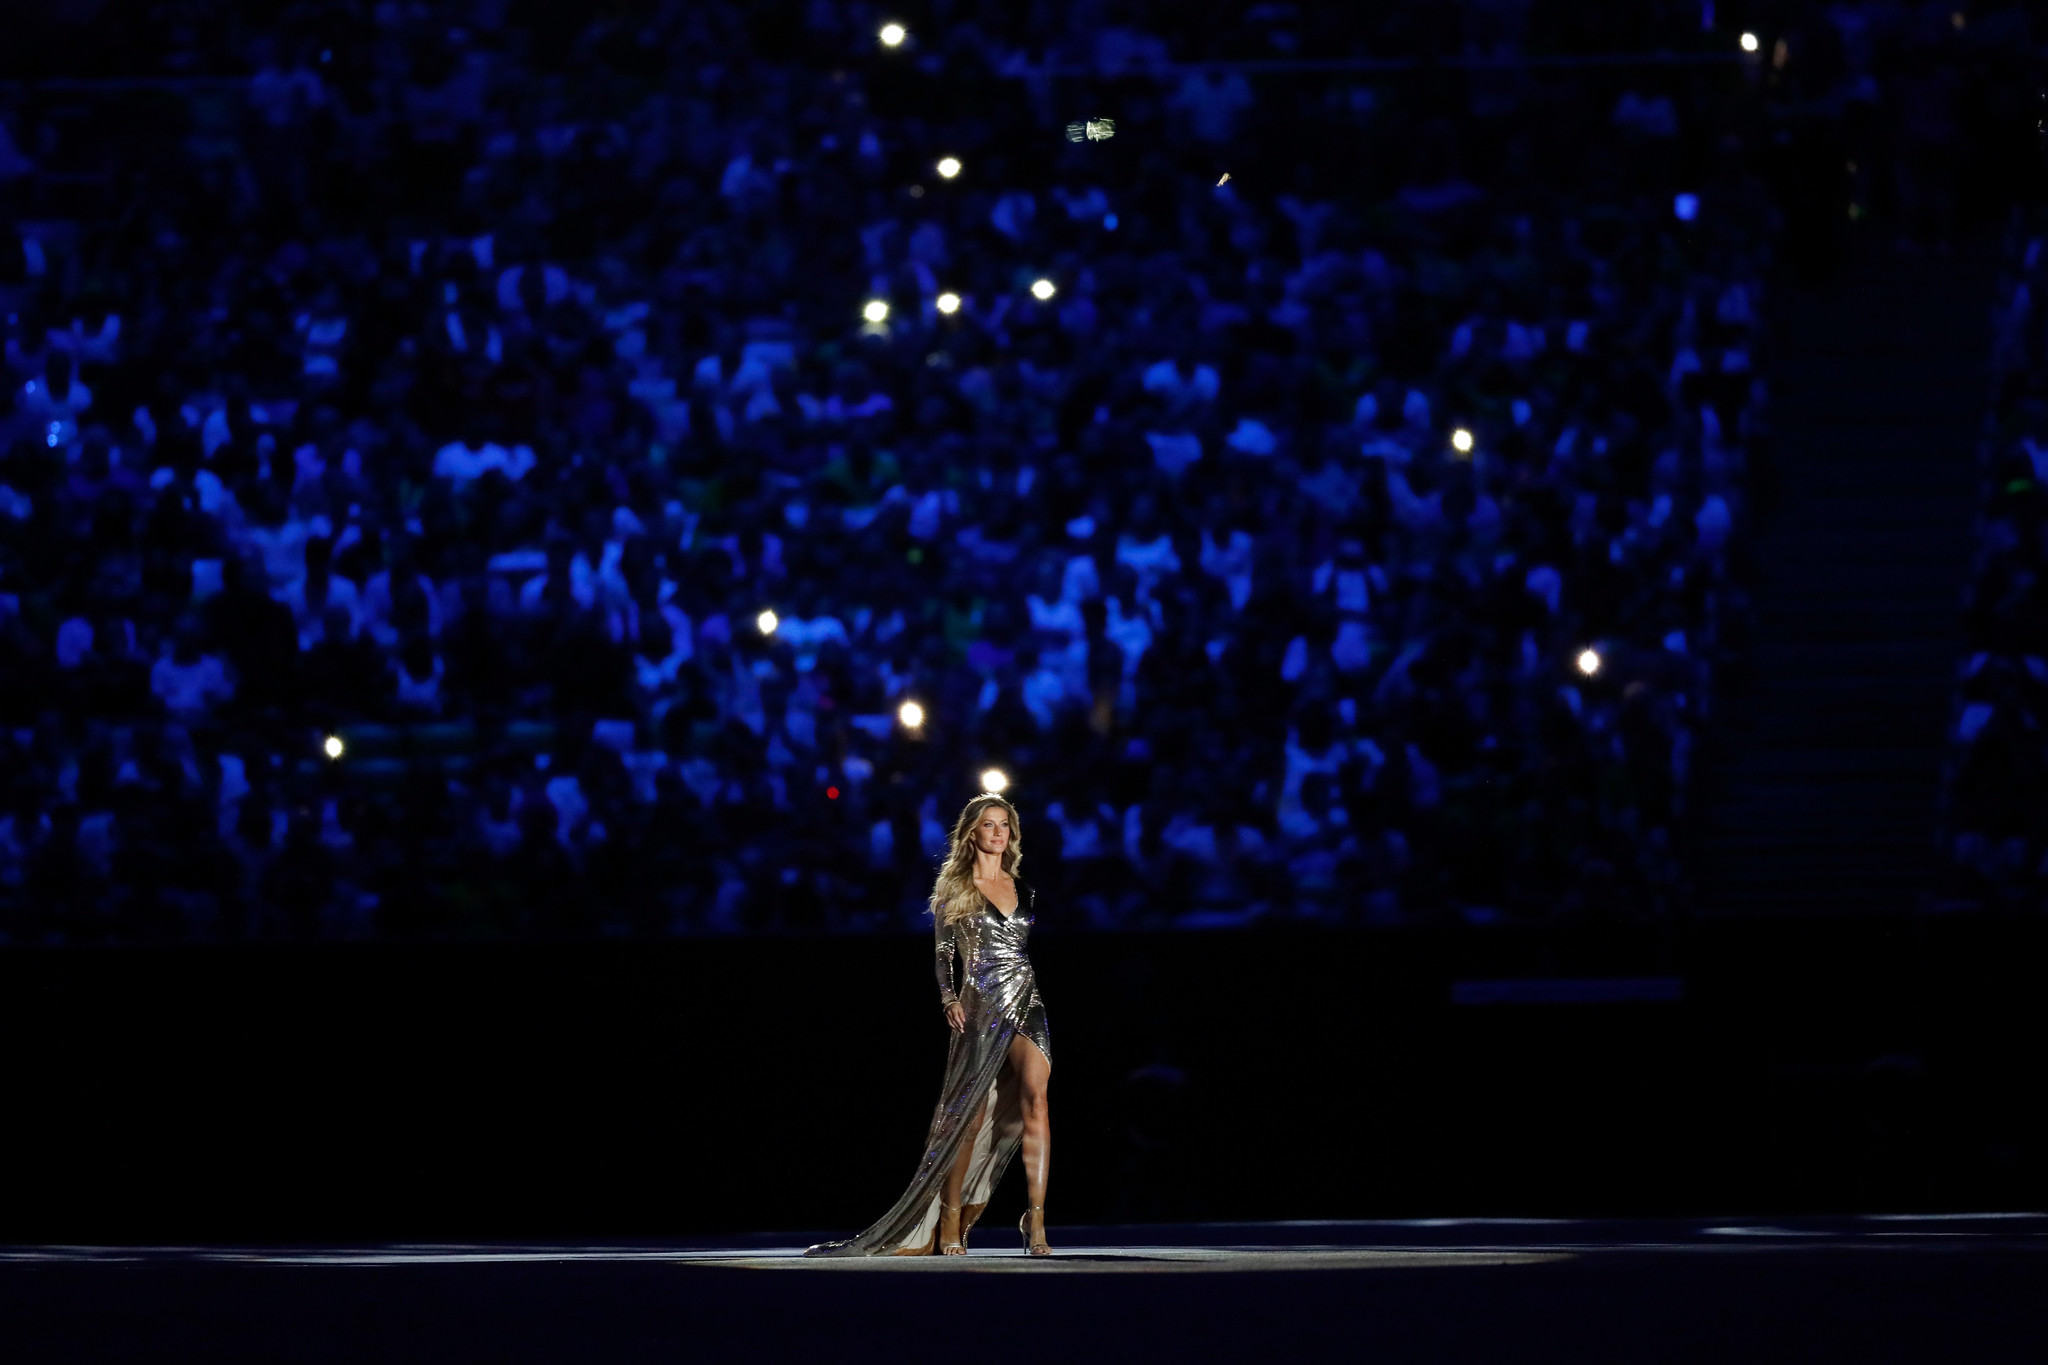 'Ipanema' song jumps 1,200 percent after Olympics ceremony